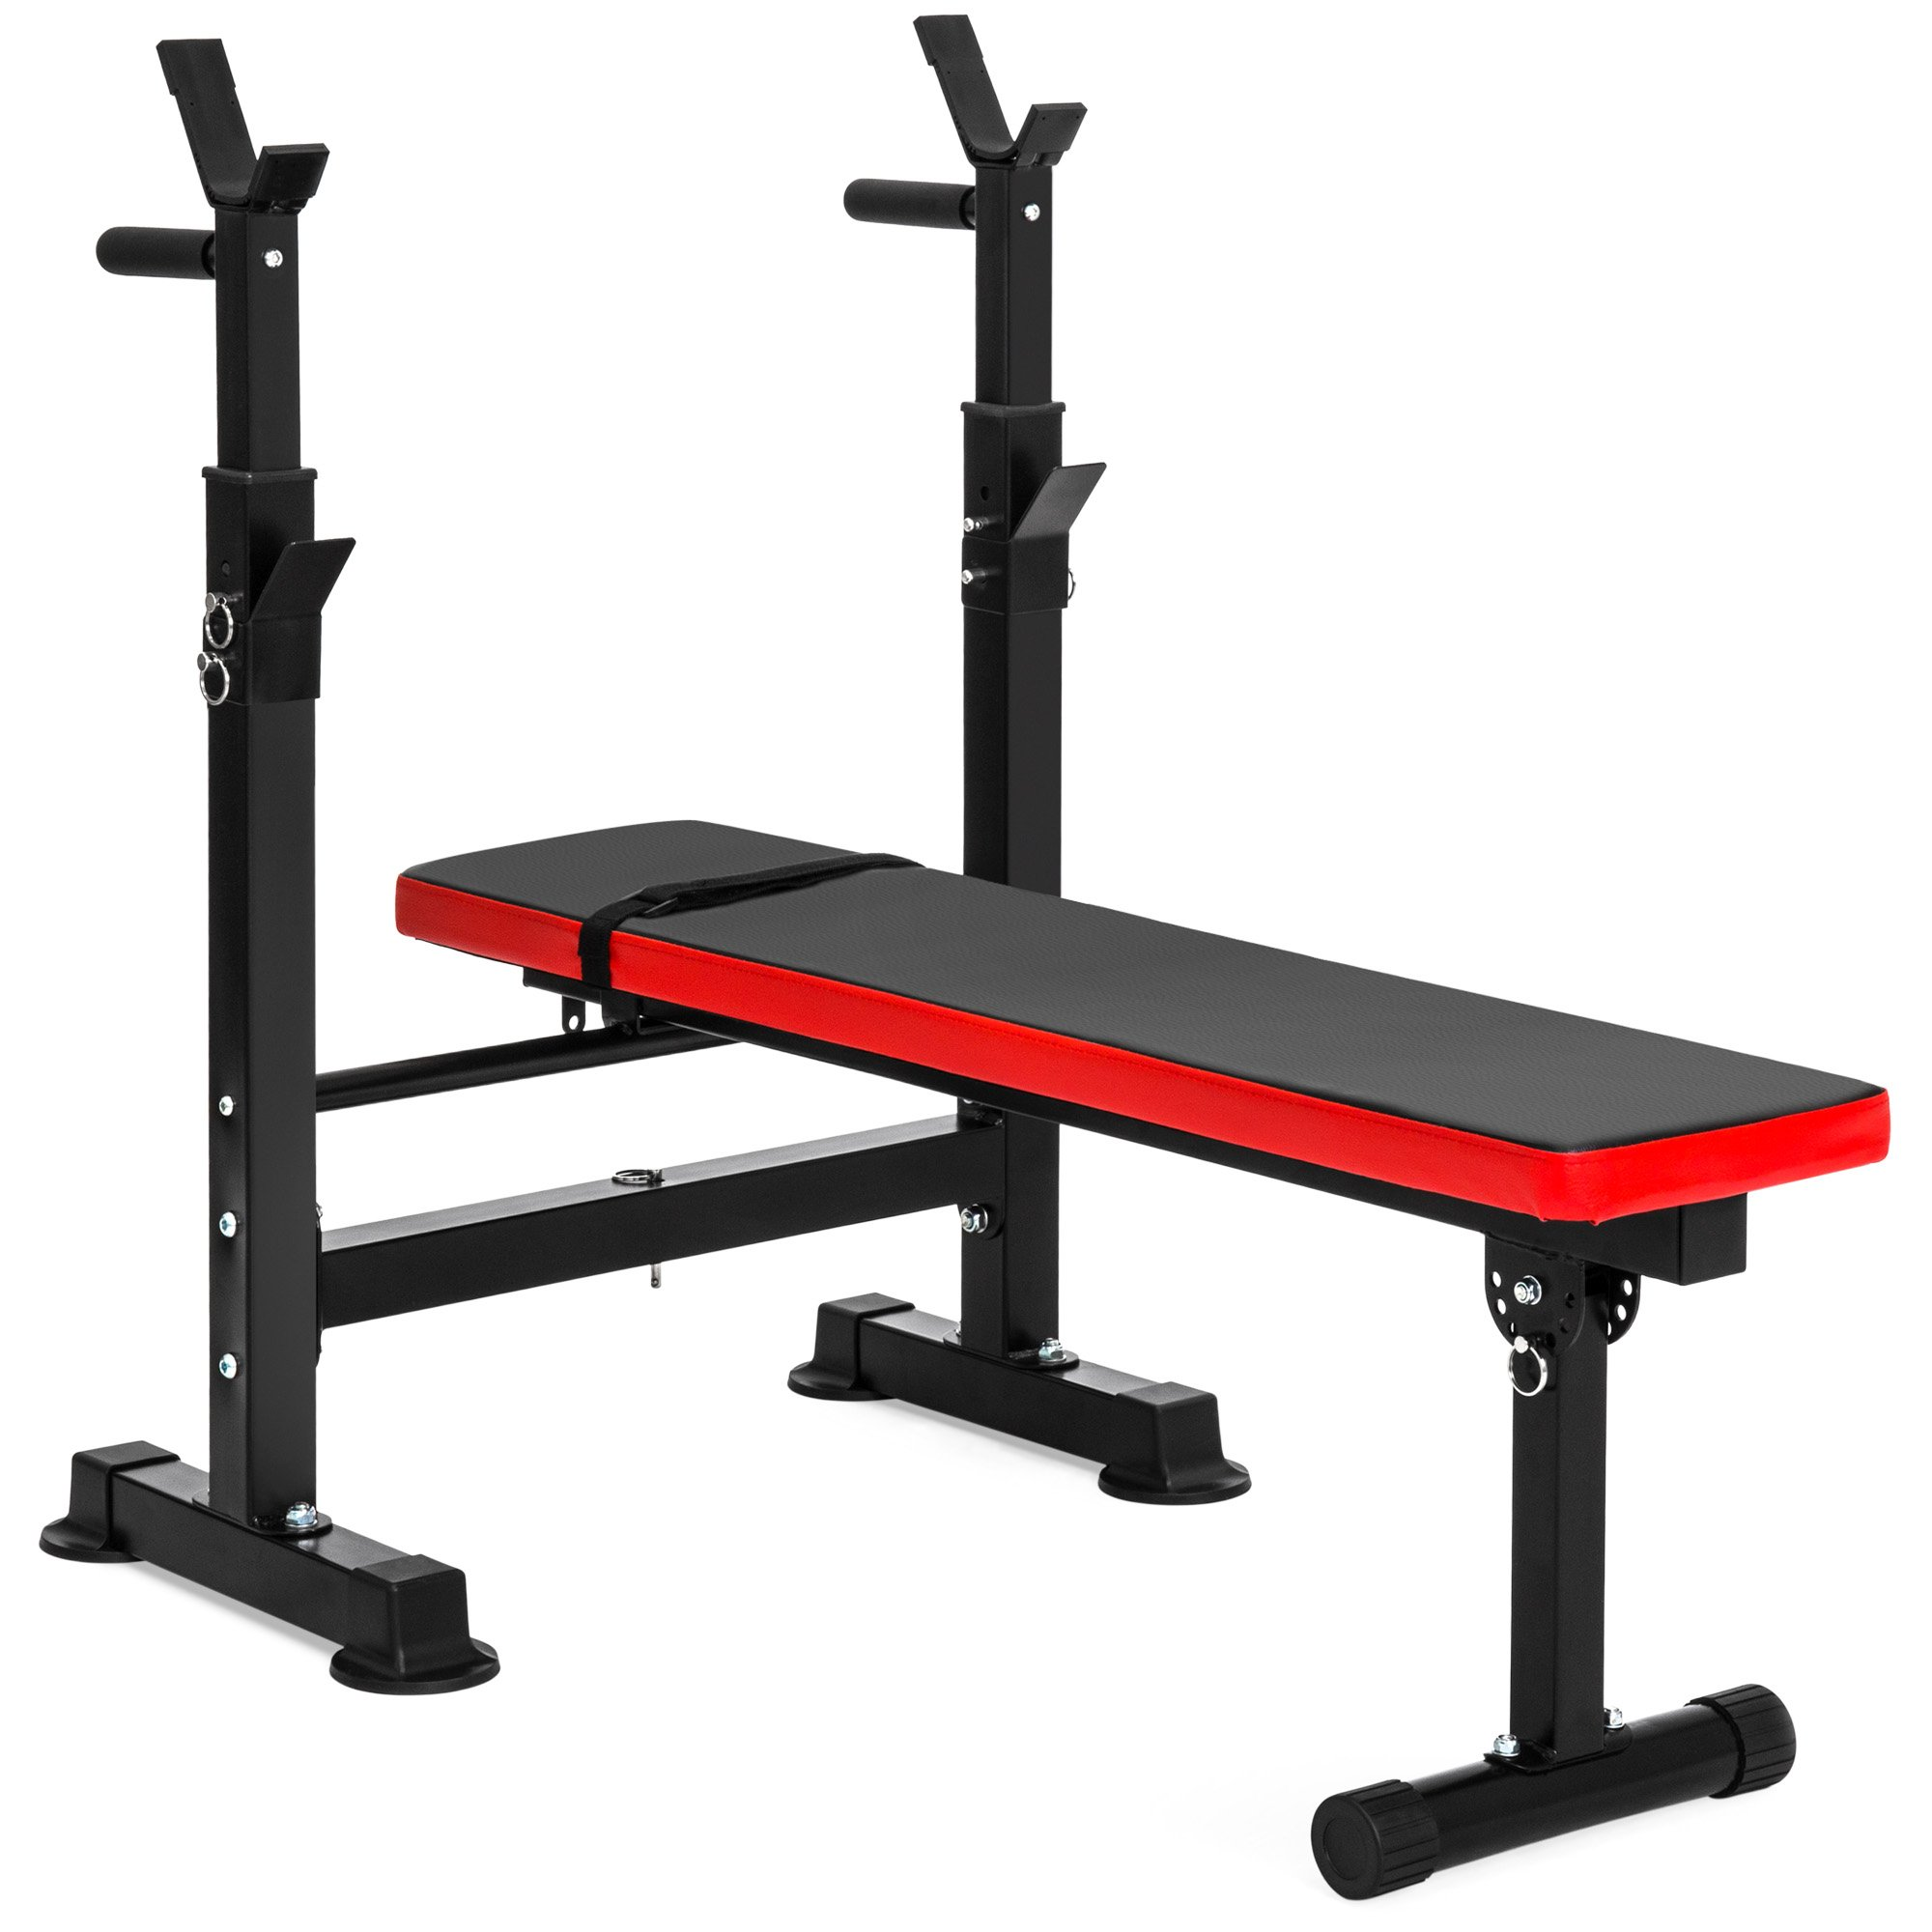 Best Choice Products Adjustable Folding Fitness Barbell Rack and Weight Bench for Home Gym, Strength Training - Black by Best Choice Products